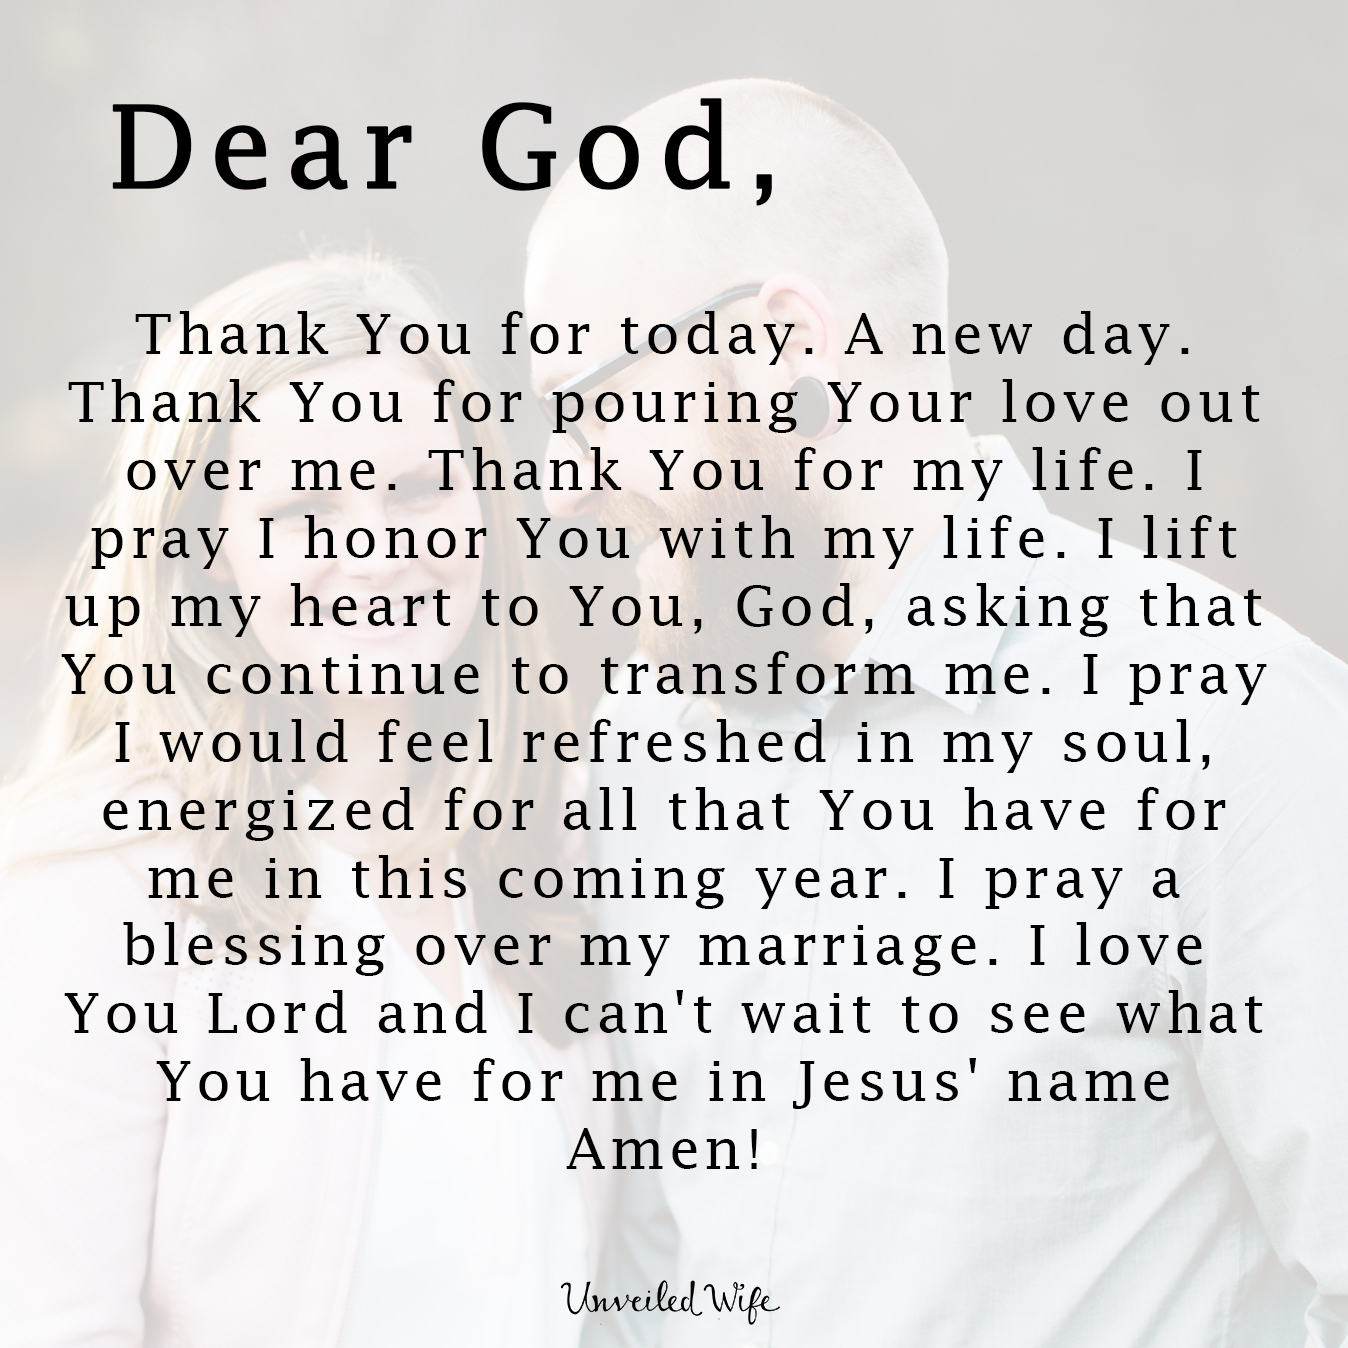 New Relationship Love Quotes: Prayer: Feeling Refreshed